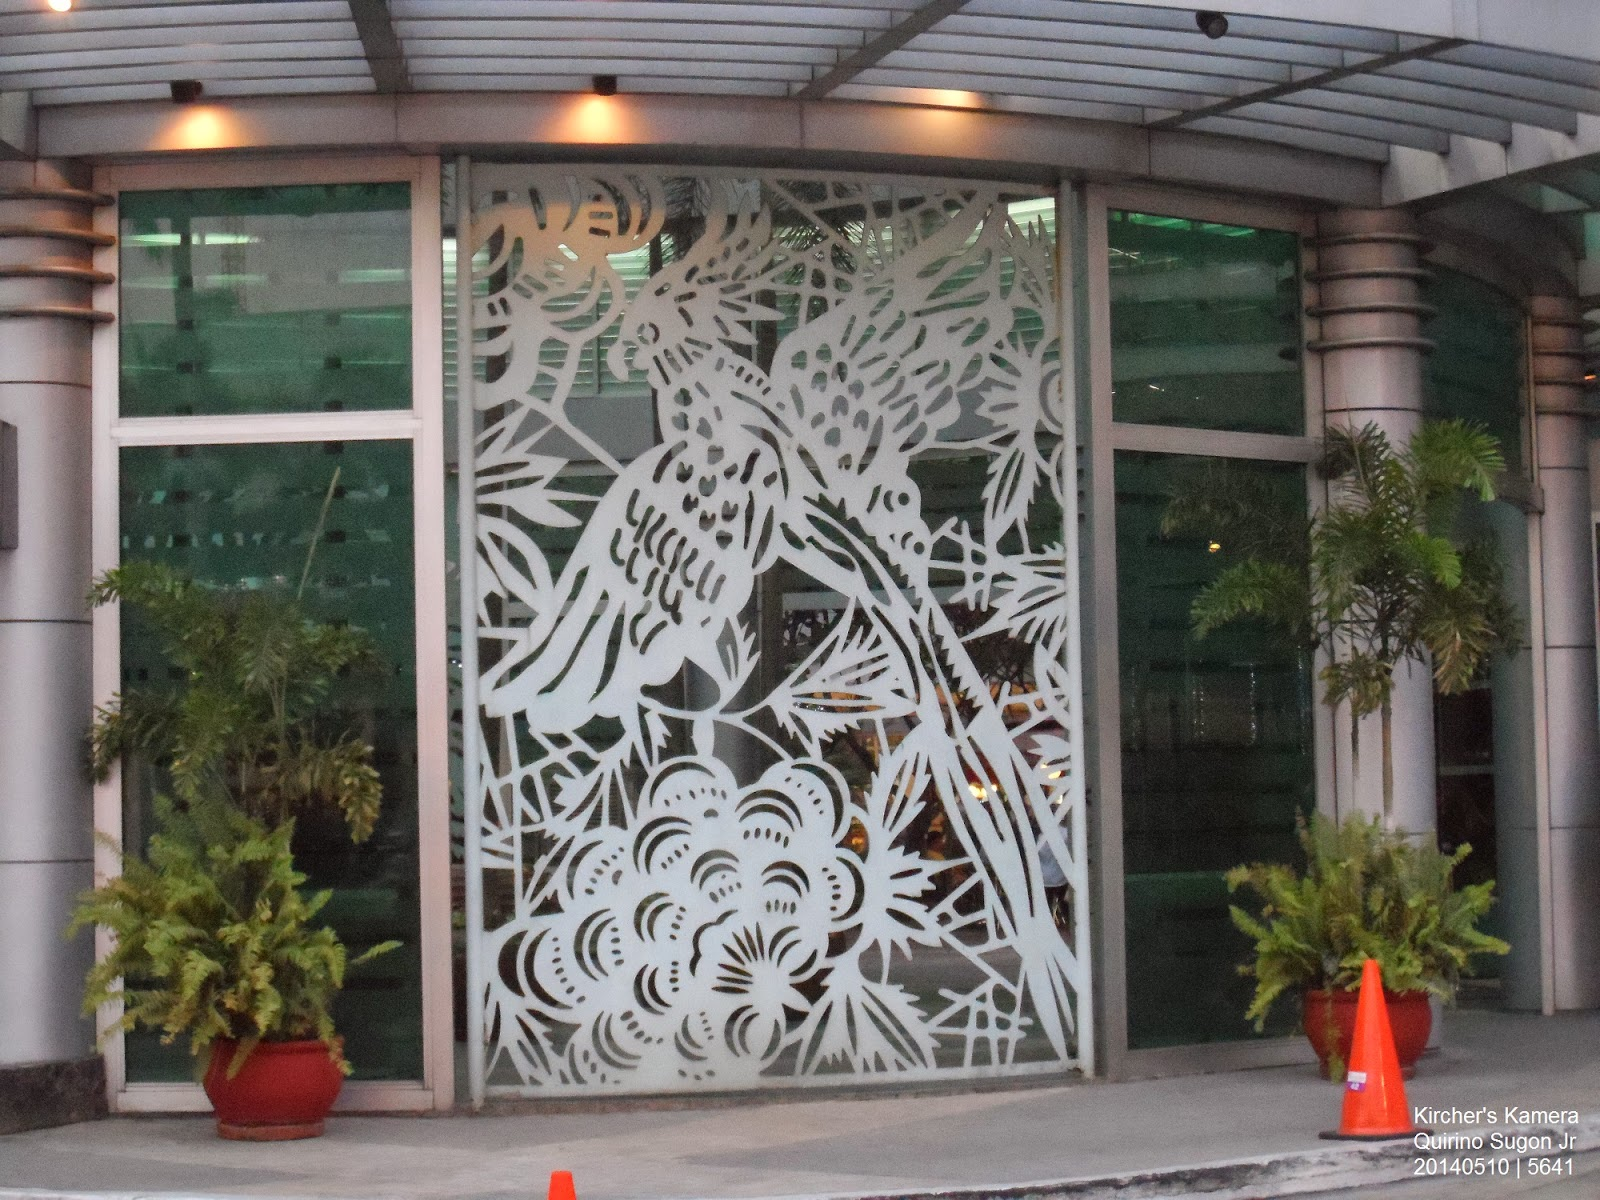 The white bird design at the main entrance of Gateway Mall. The bird looks like a parrot.  Below the bird is probably a cluster of flowers.  Two plants flank the bird art near the two polished steel columns.